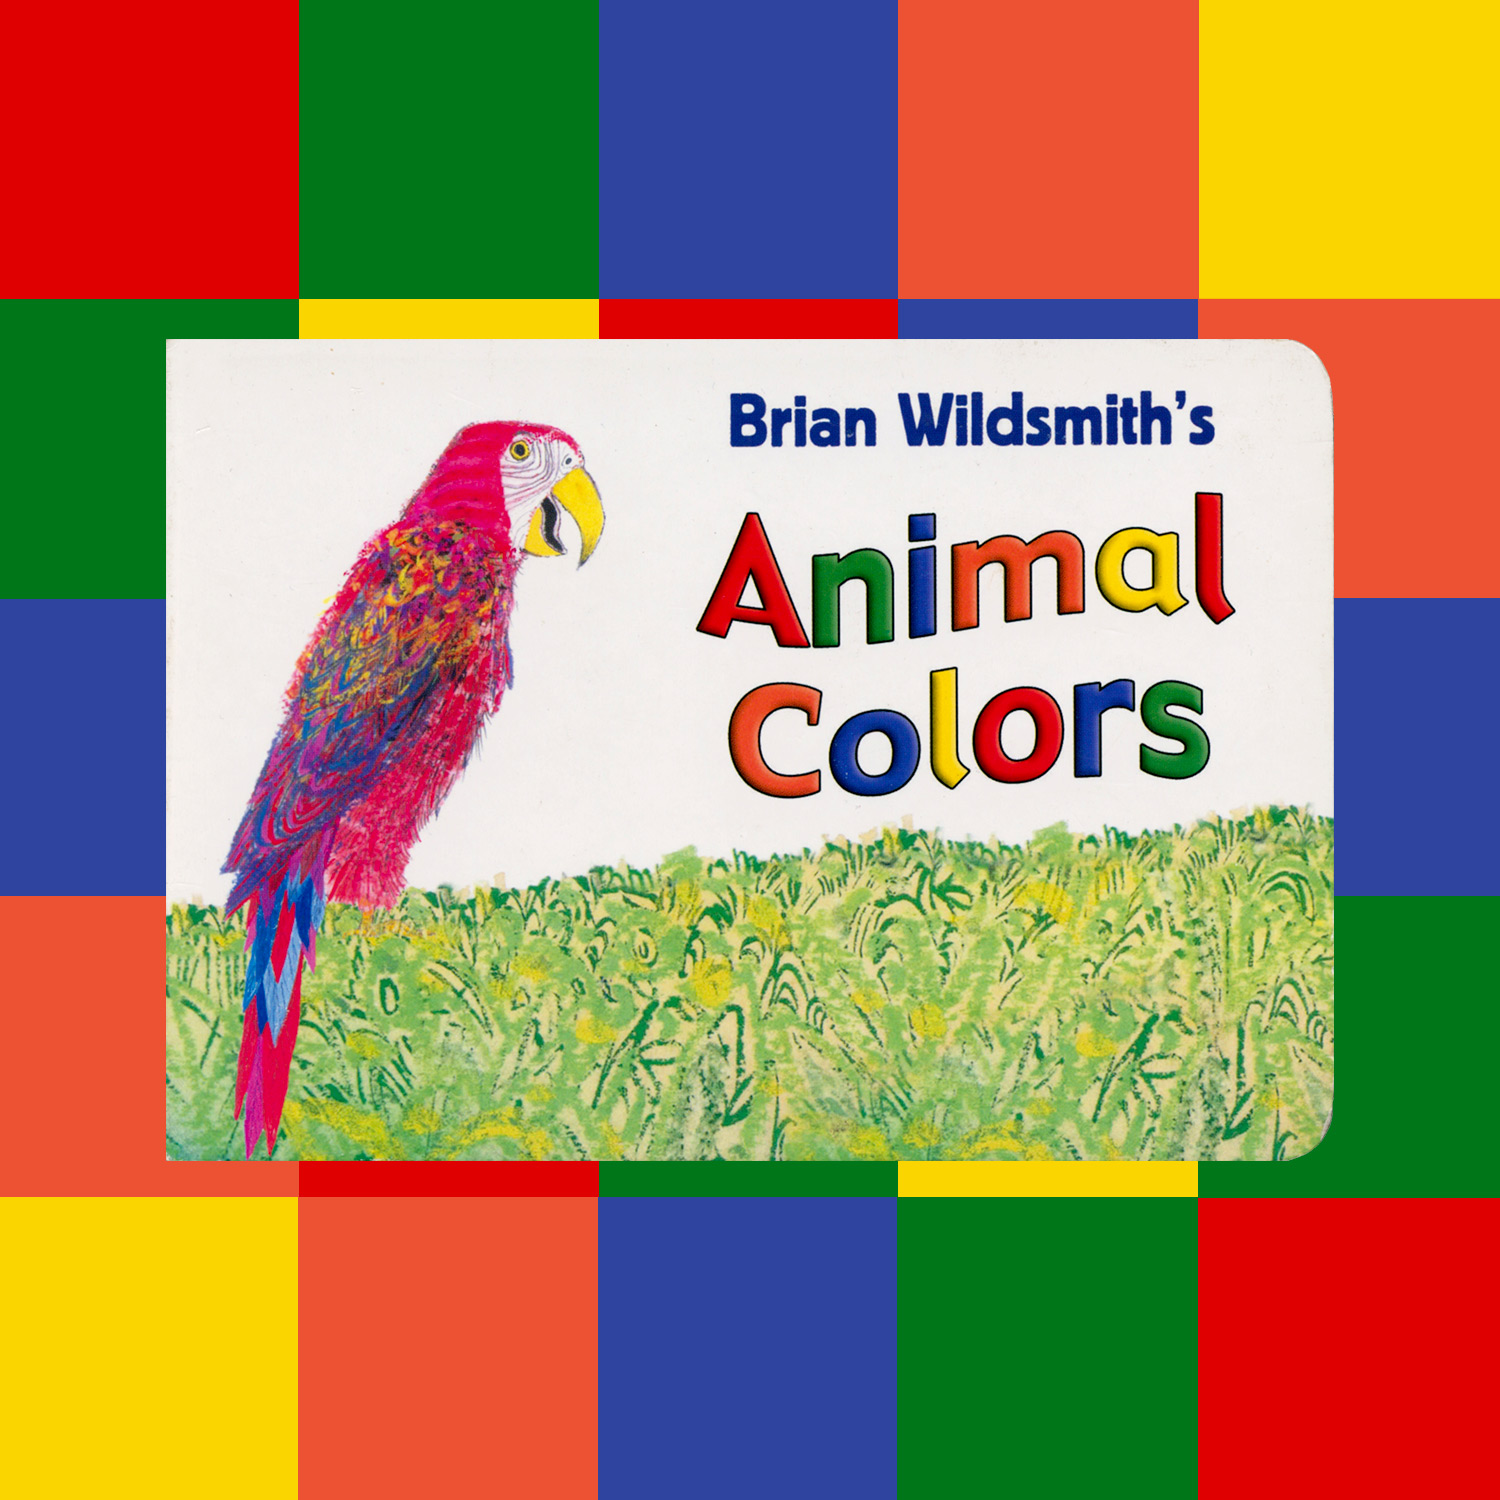 """BRIAN WILDSMITH'S ANIMAL COLORS - 2007""""Wildsmith teaches colors through the vibrantly illustrated animals on the pages of this popular color book."""""""